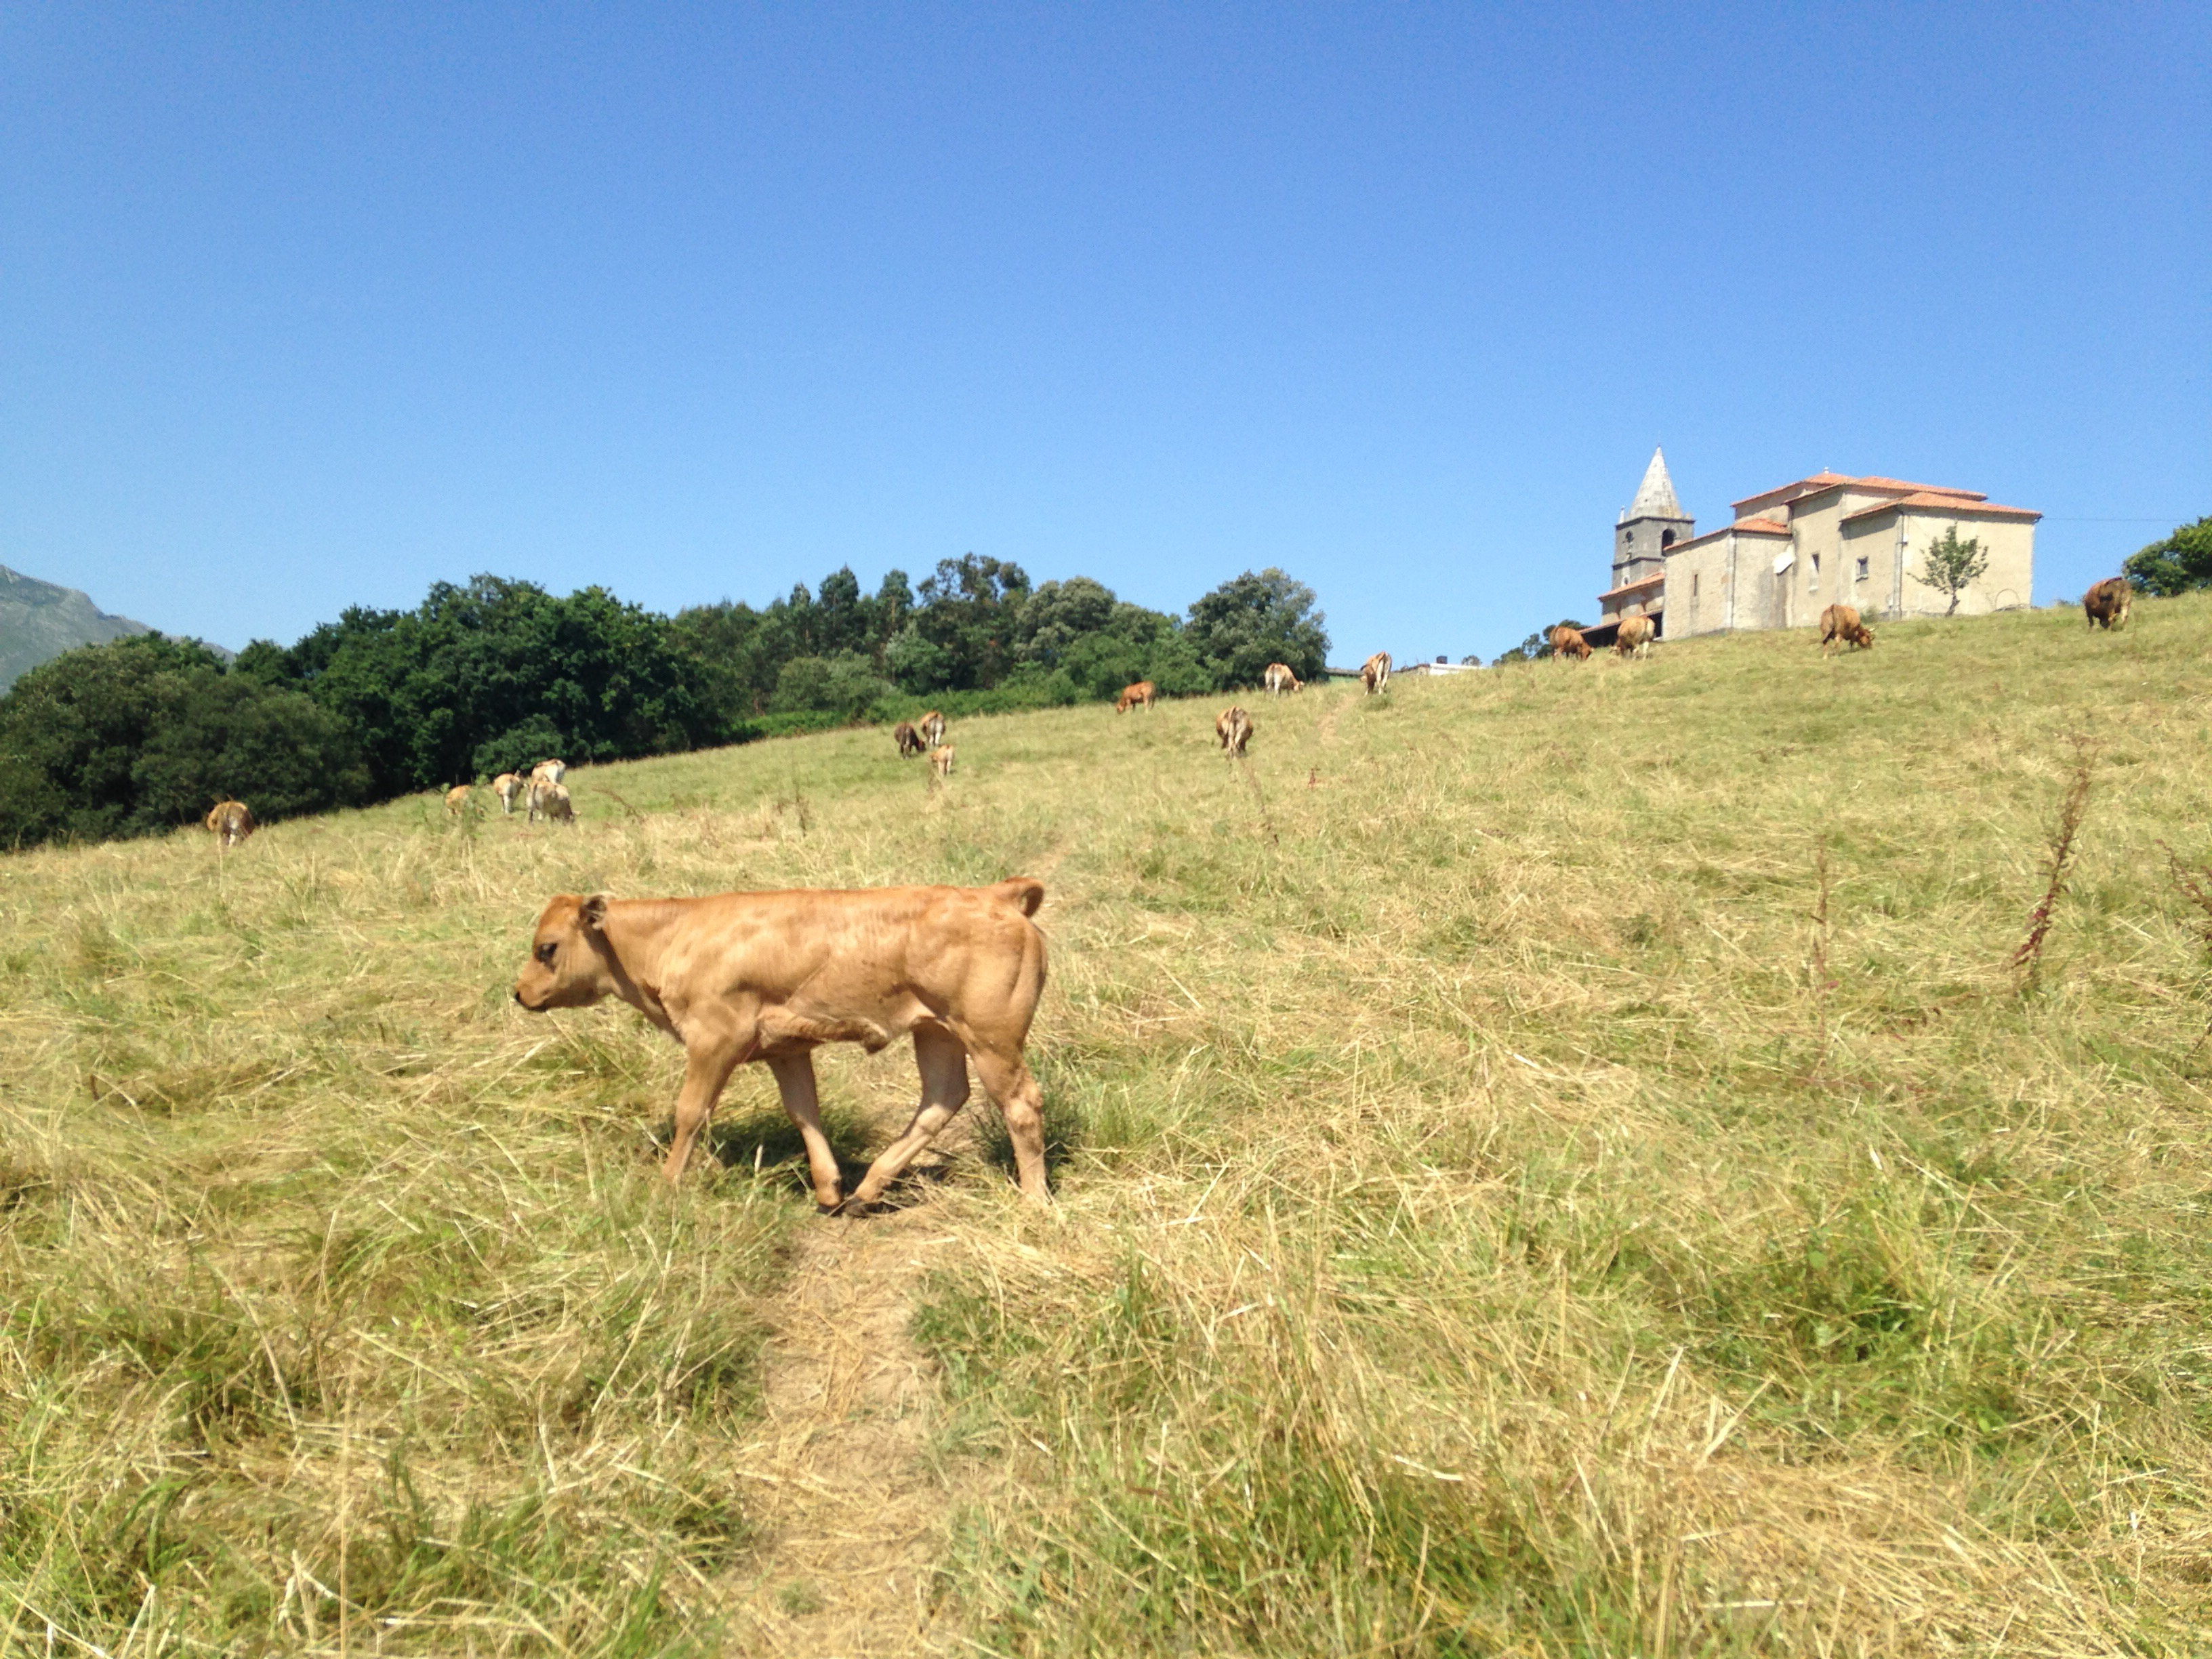 Baby cows on the Camino del Norte